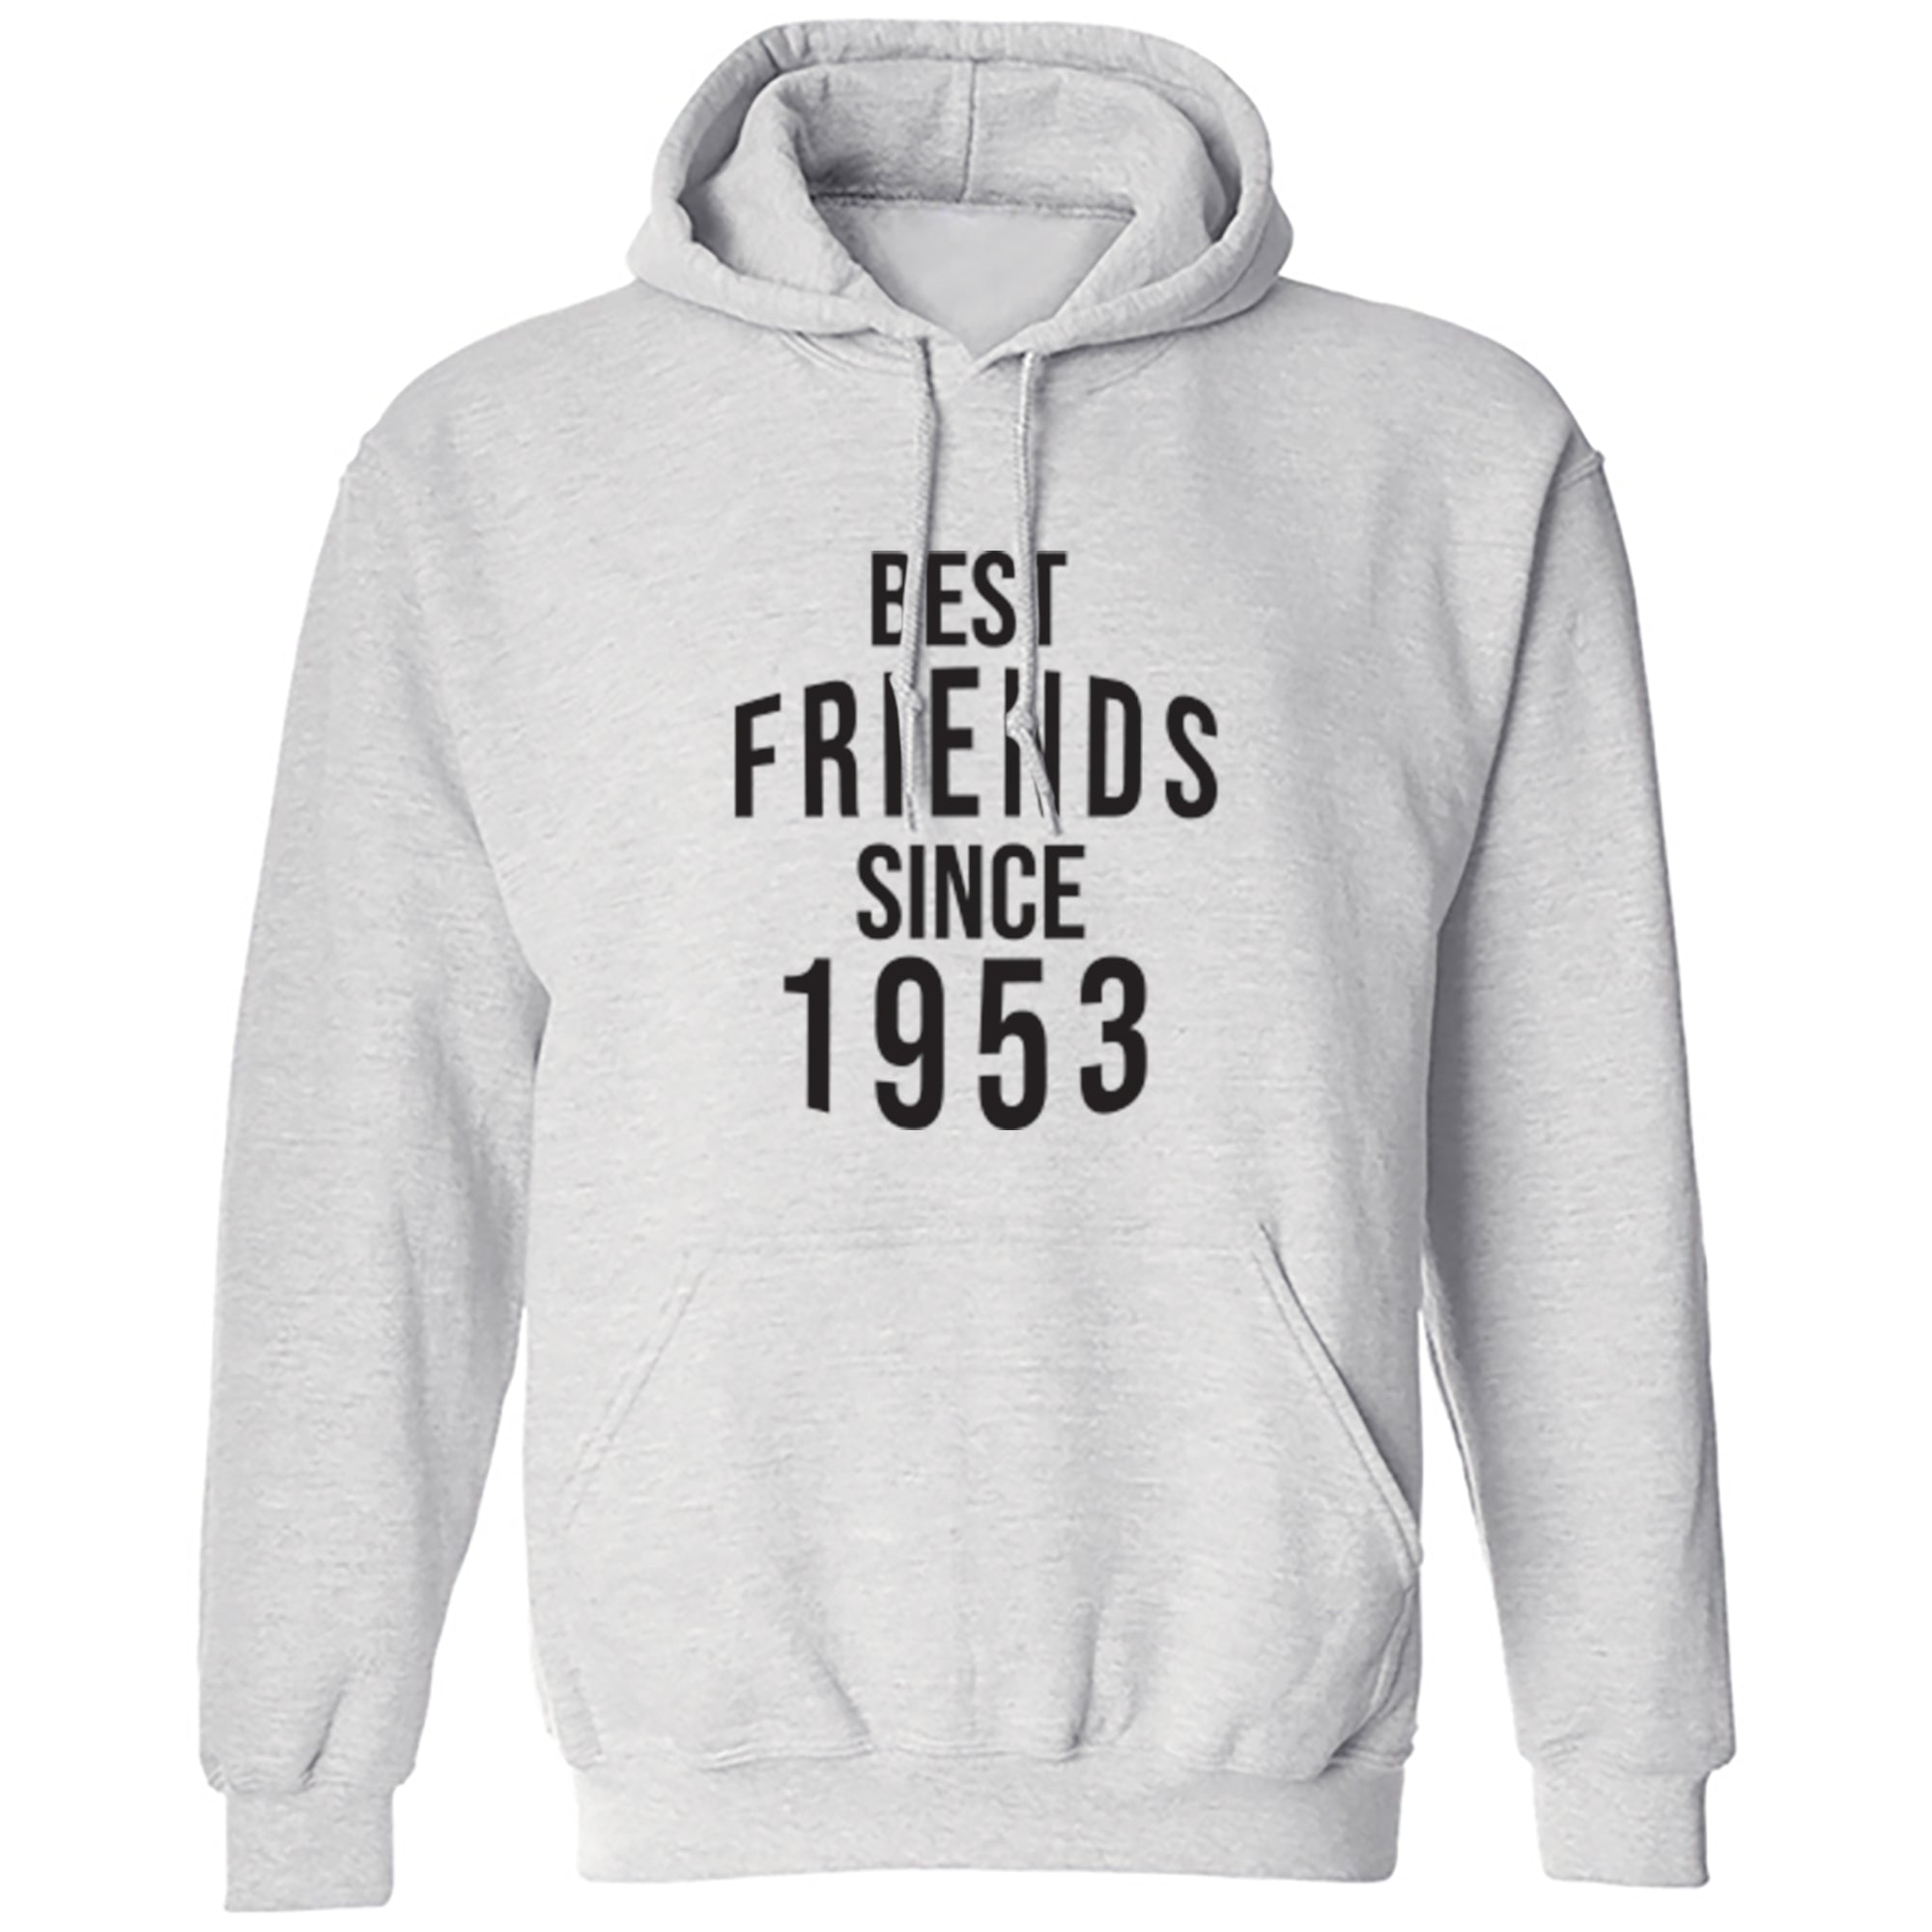 Best Friends Since 1953 Unisex Hoodie S0532 - Illustrated Identity Ltd.